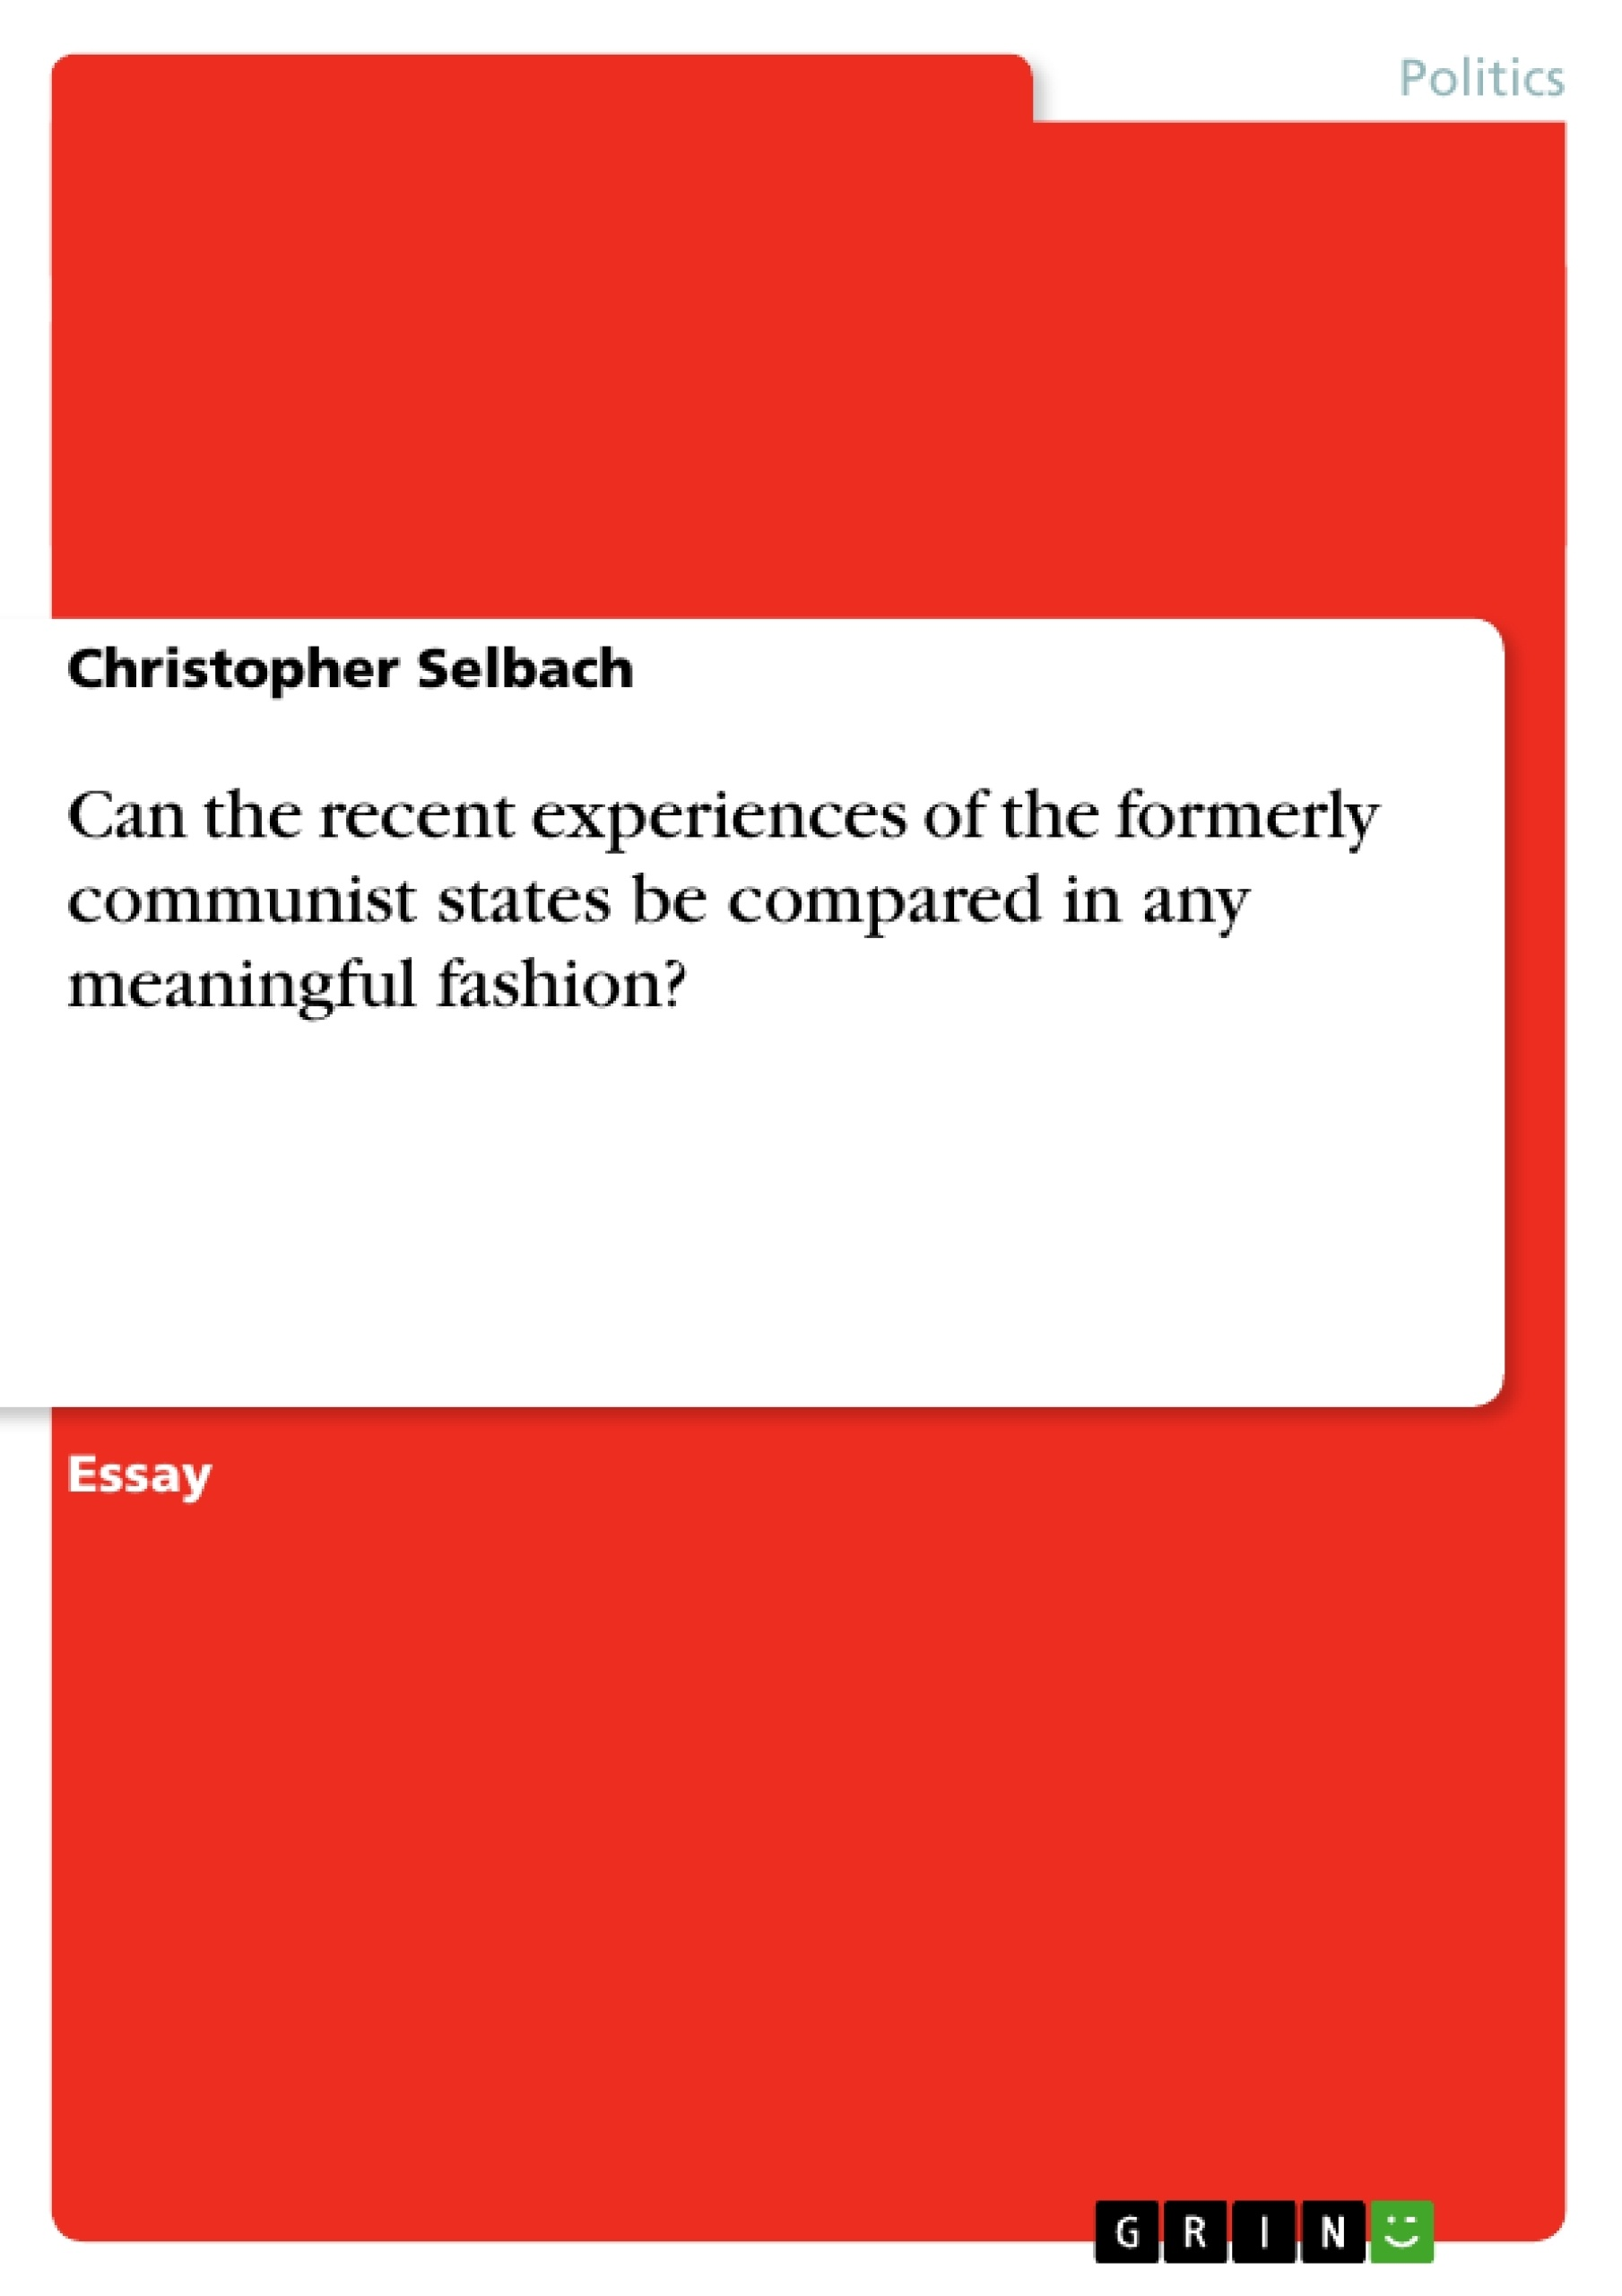 Title: Can the recent experiences of the formerly communist states be compared in any meaningful fashion?